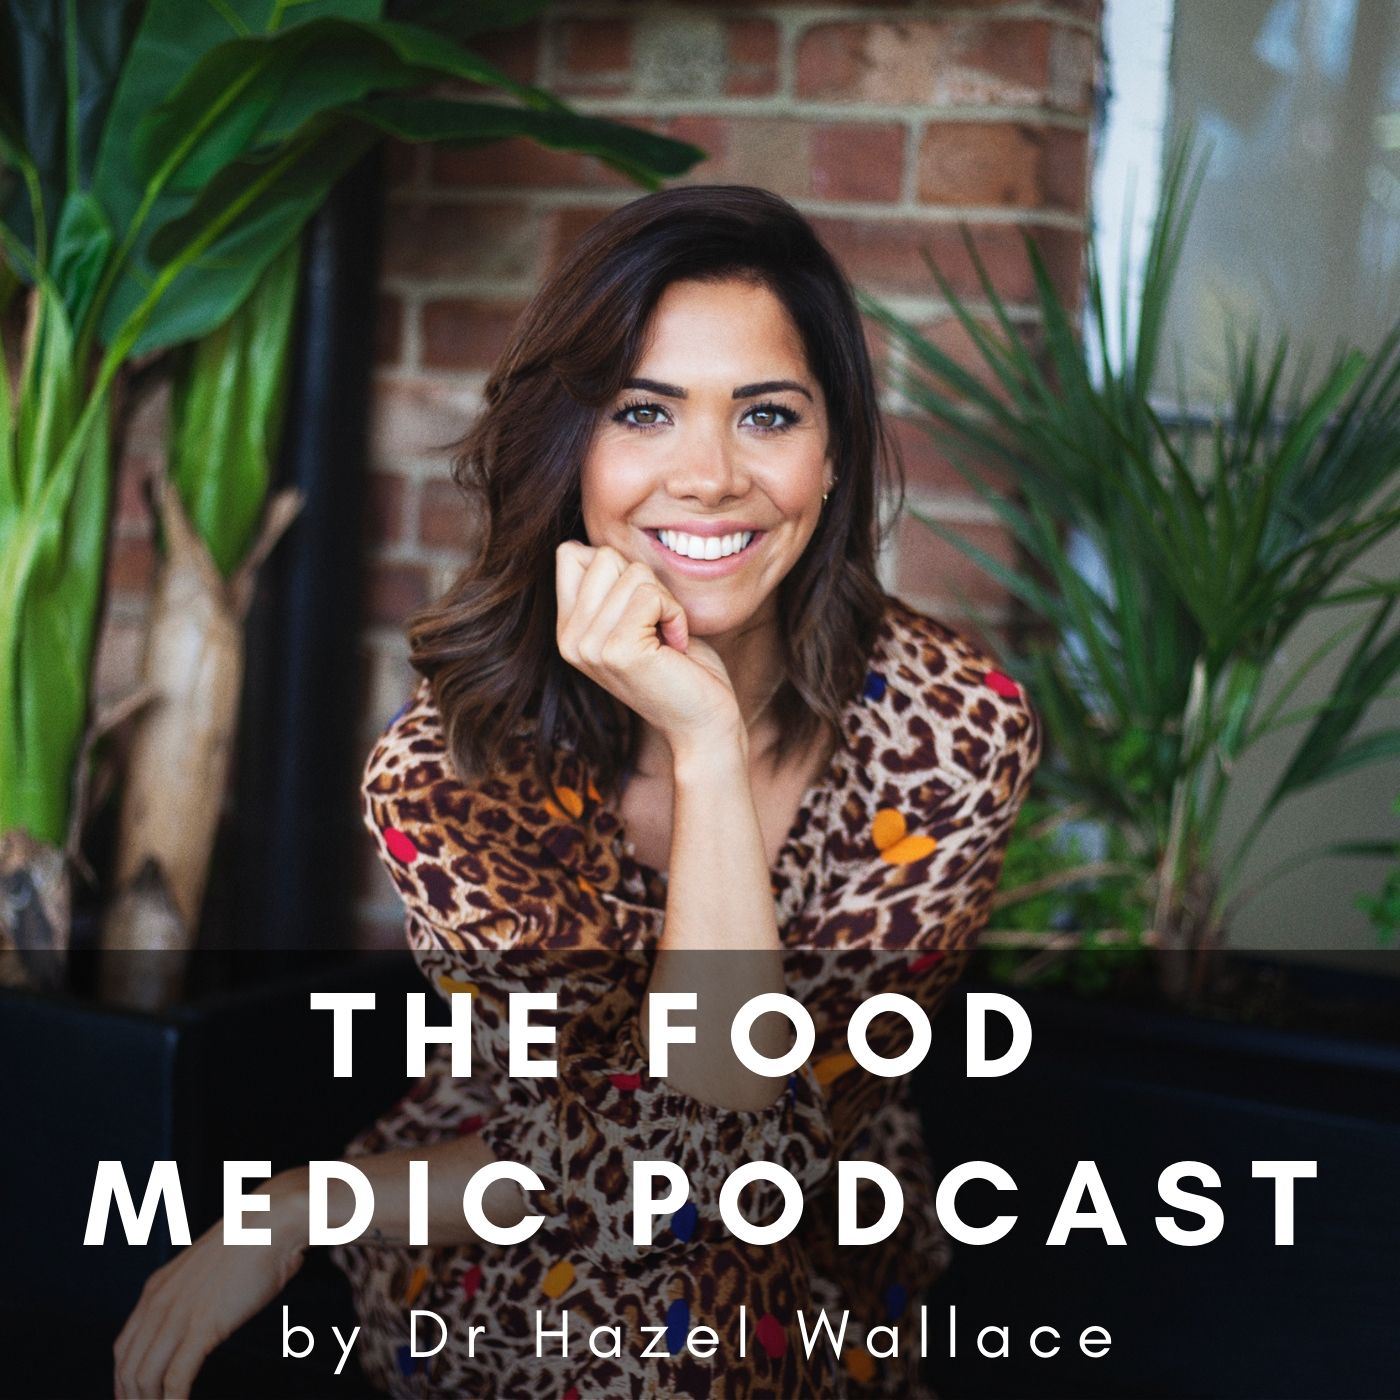 S1 E7 - Clean Eating and Orthorexia